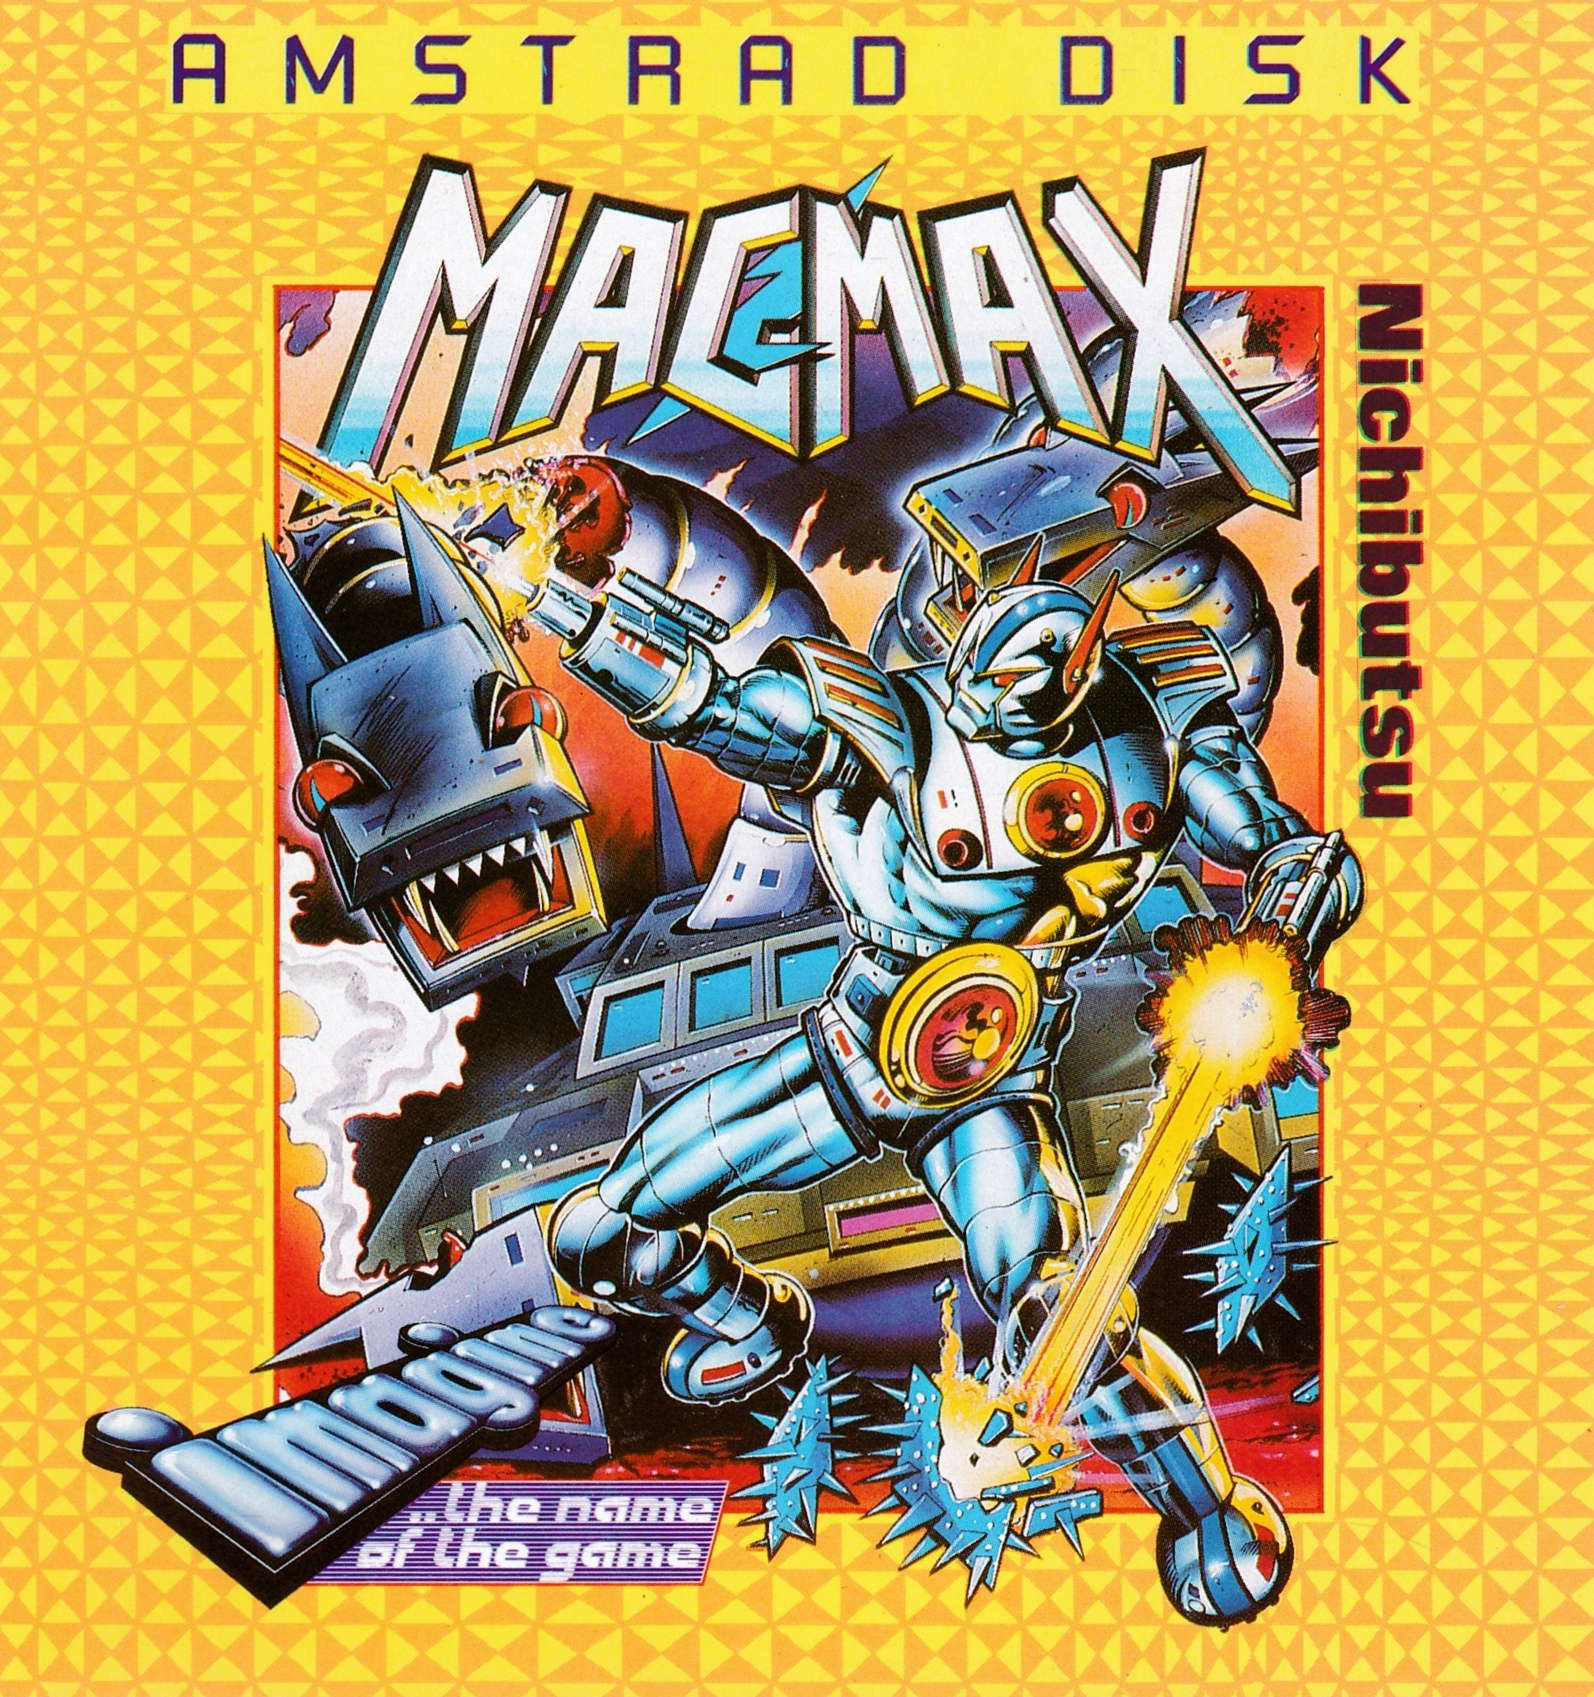 cover of the Amstrad CPC game Mag Max  by GameBase CPC